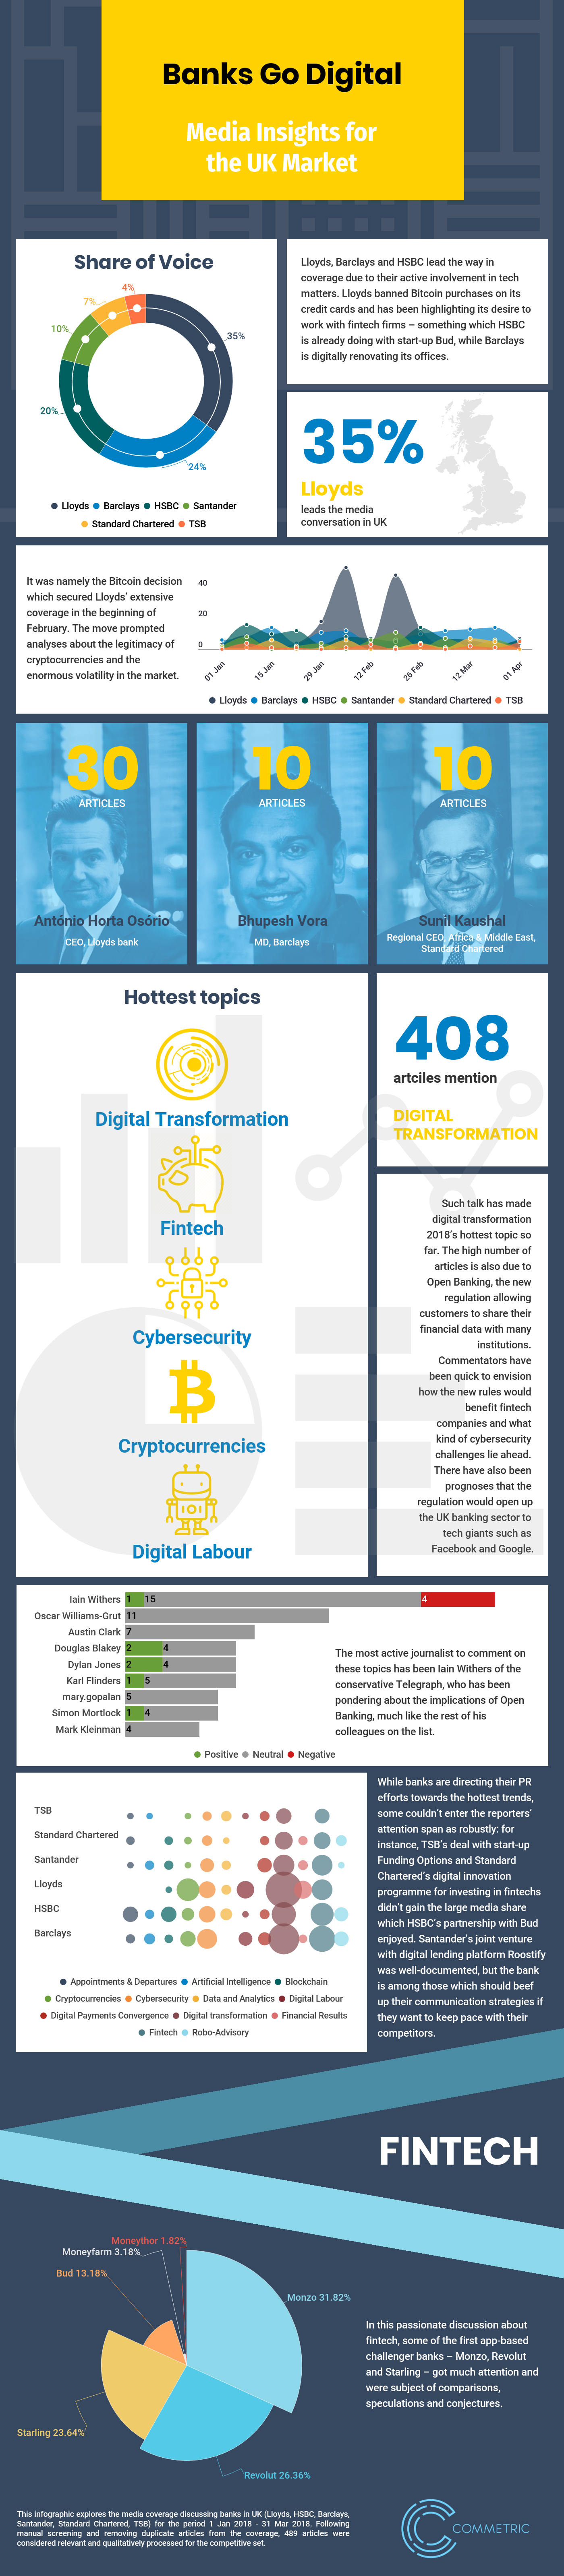 Banks Go Digital Infographic